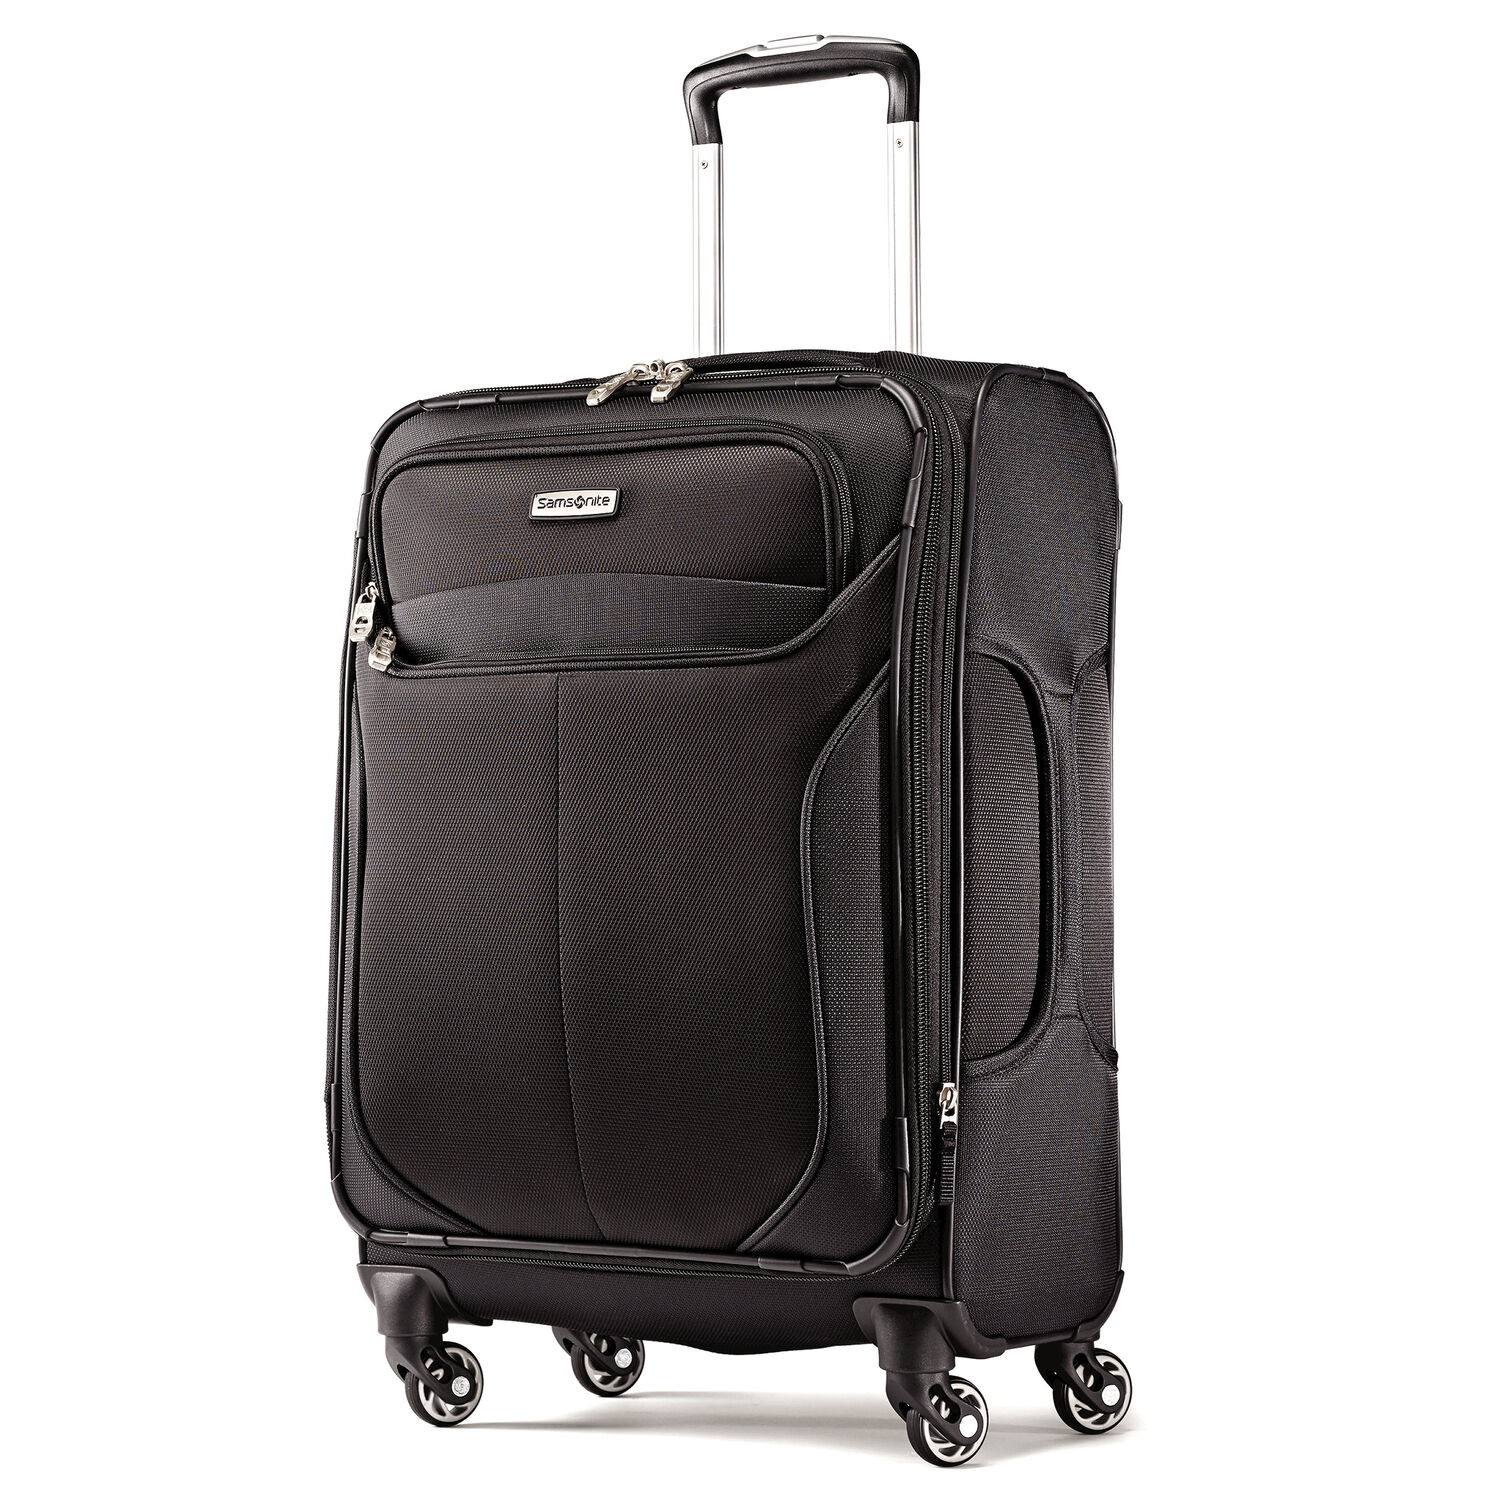 The best lightweight luggage on the market babble for Best cabin luggage